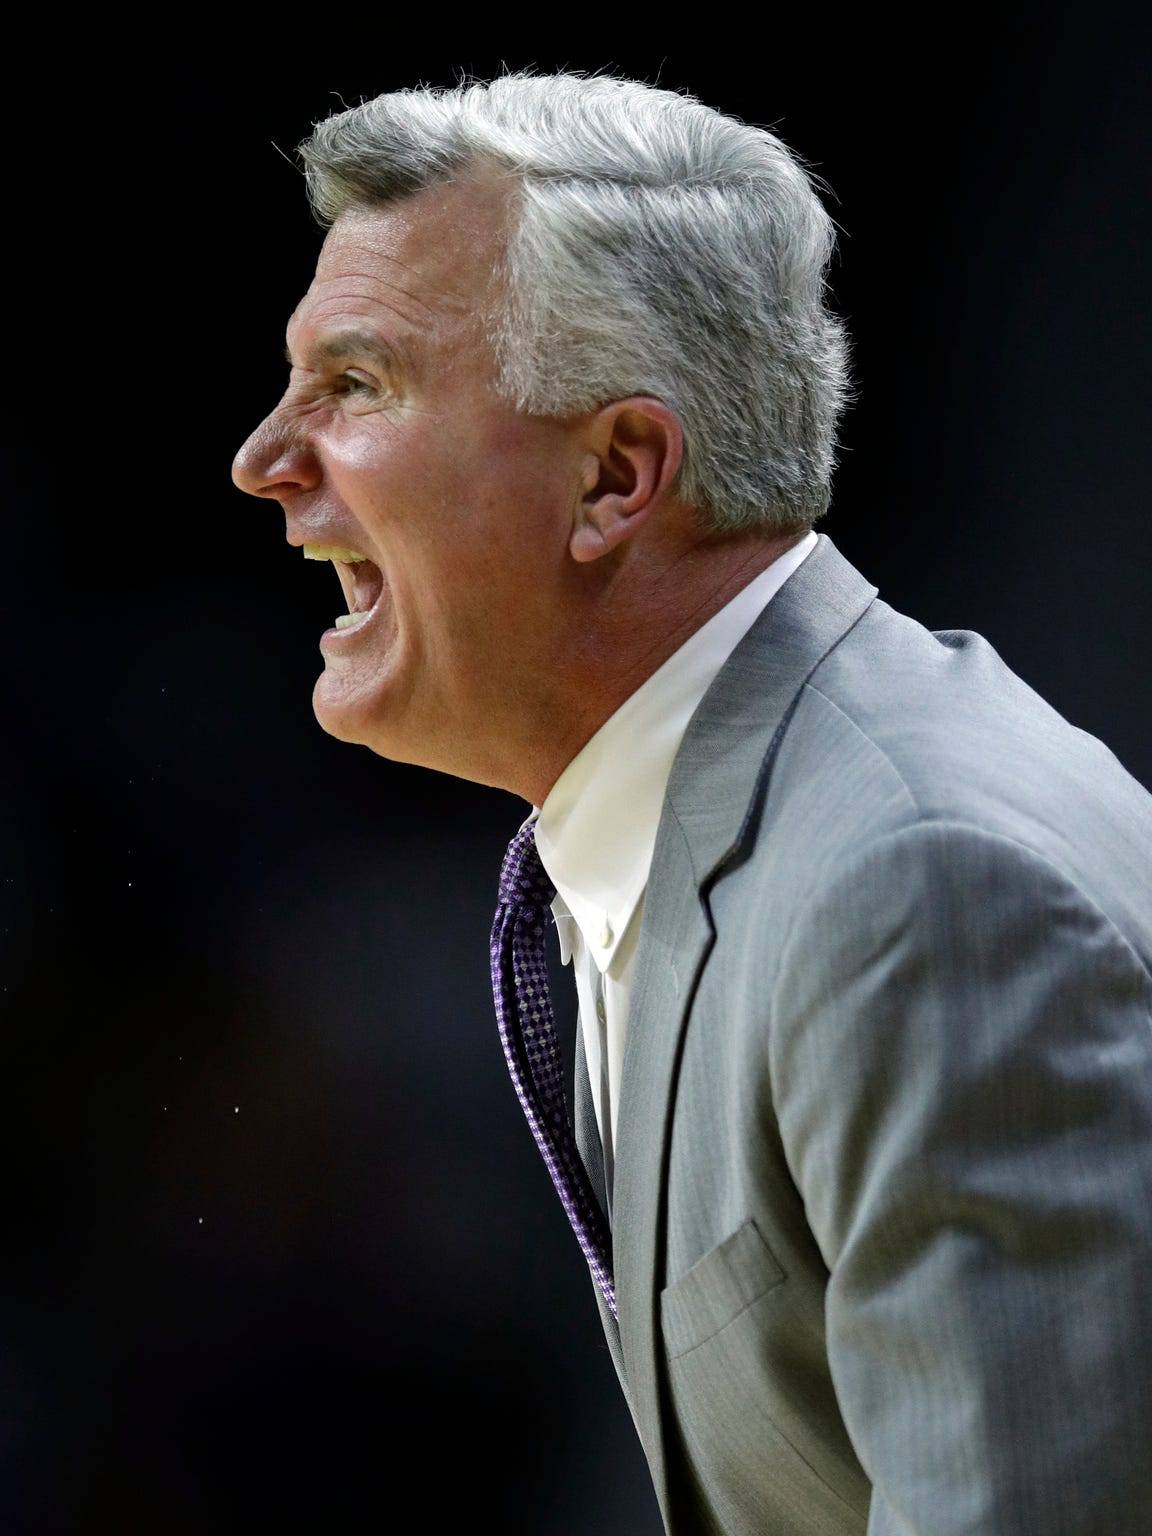 Kansas State coach Bruce Weber shouts to his team during the first half against Texas in Manhattan, Kansas, on Feb. 21, 2018. Weber is a Milwaukee native and graduated from UW-Milwaukee.